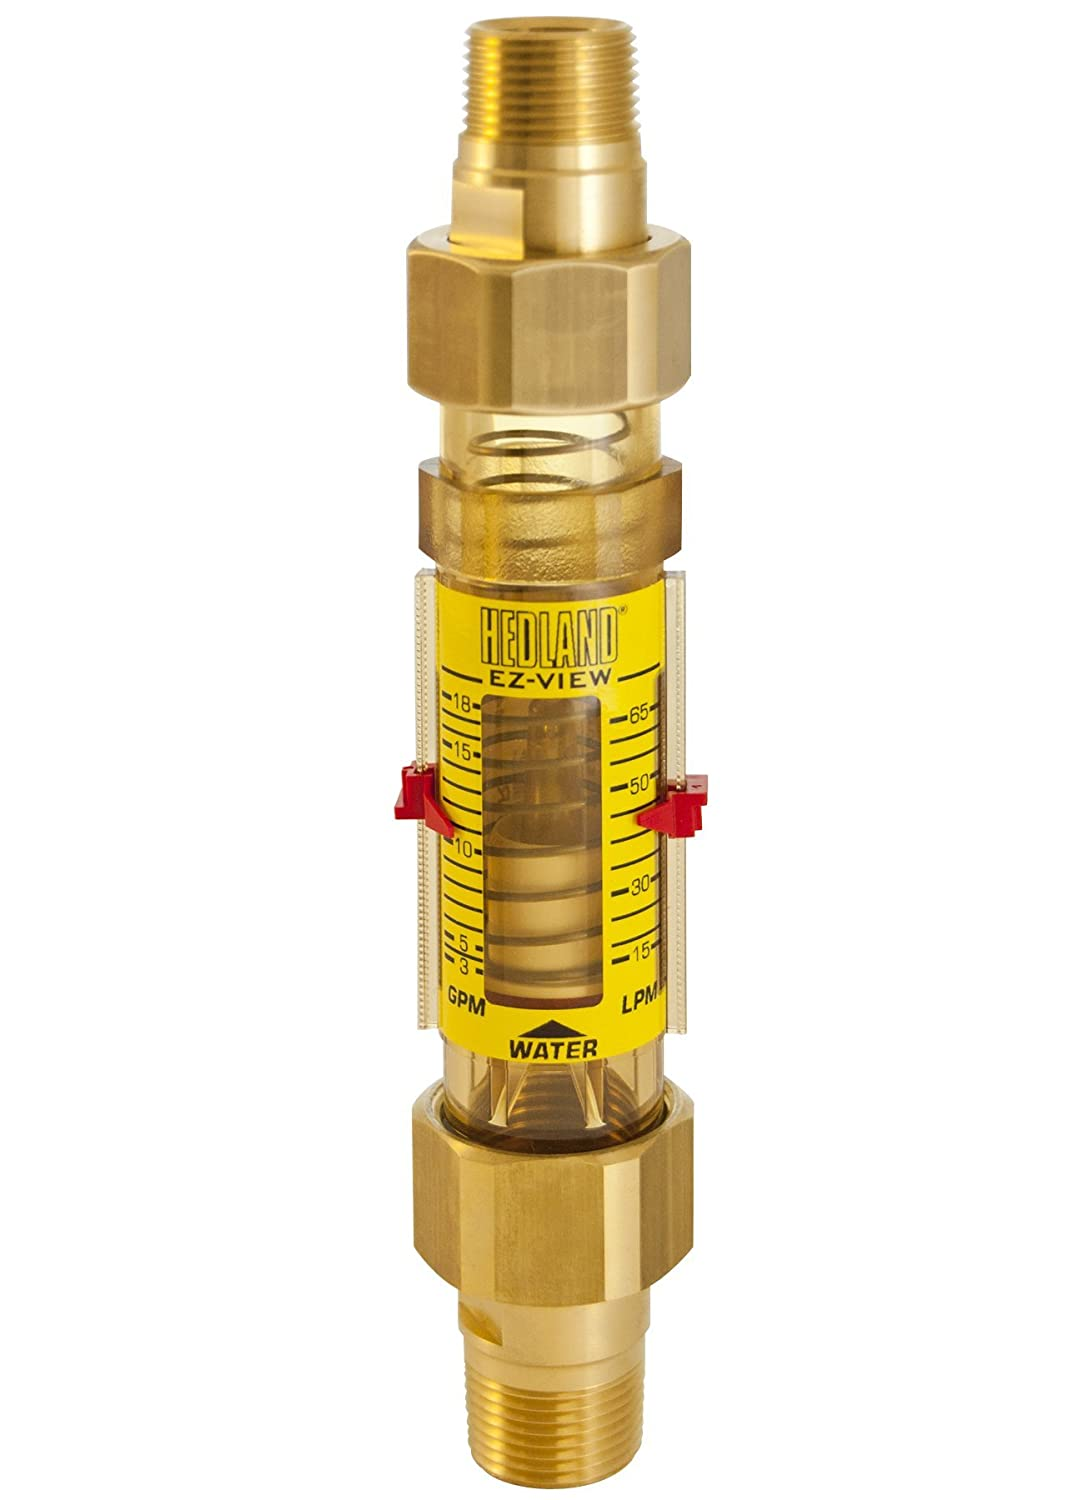 Hedland H625-018-R EZ-View Flowmeter, Polyphenylsulfone, For Use With Water, 3.0 - 18 gpm Flow Range, 3/4